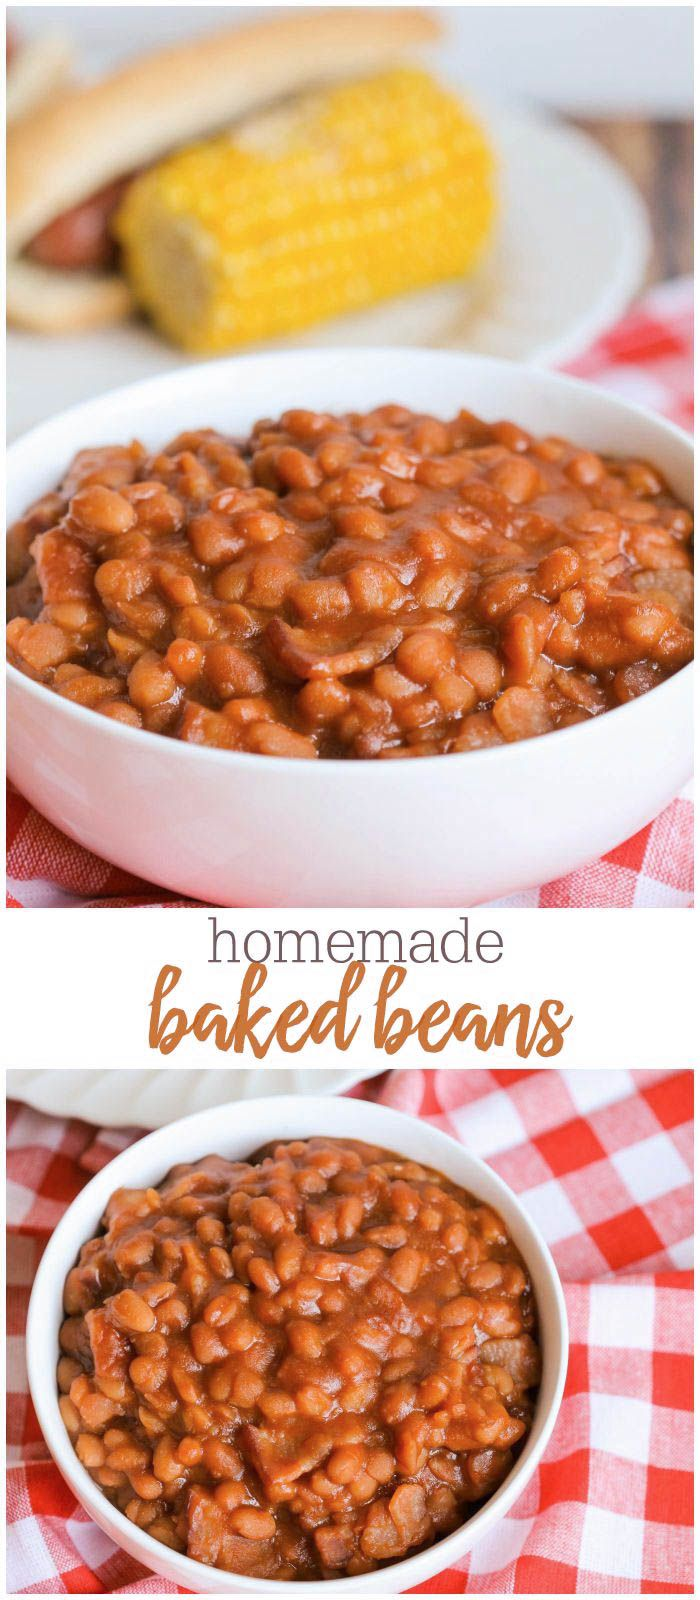 The BEST Homemade Baked Beans recipe - it's such a simple recipe and is done in the crock pot!! It's a must-have at our BBQs.